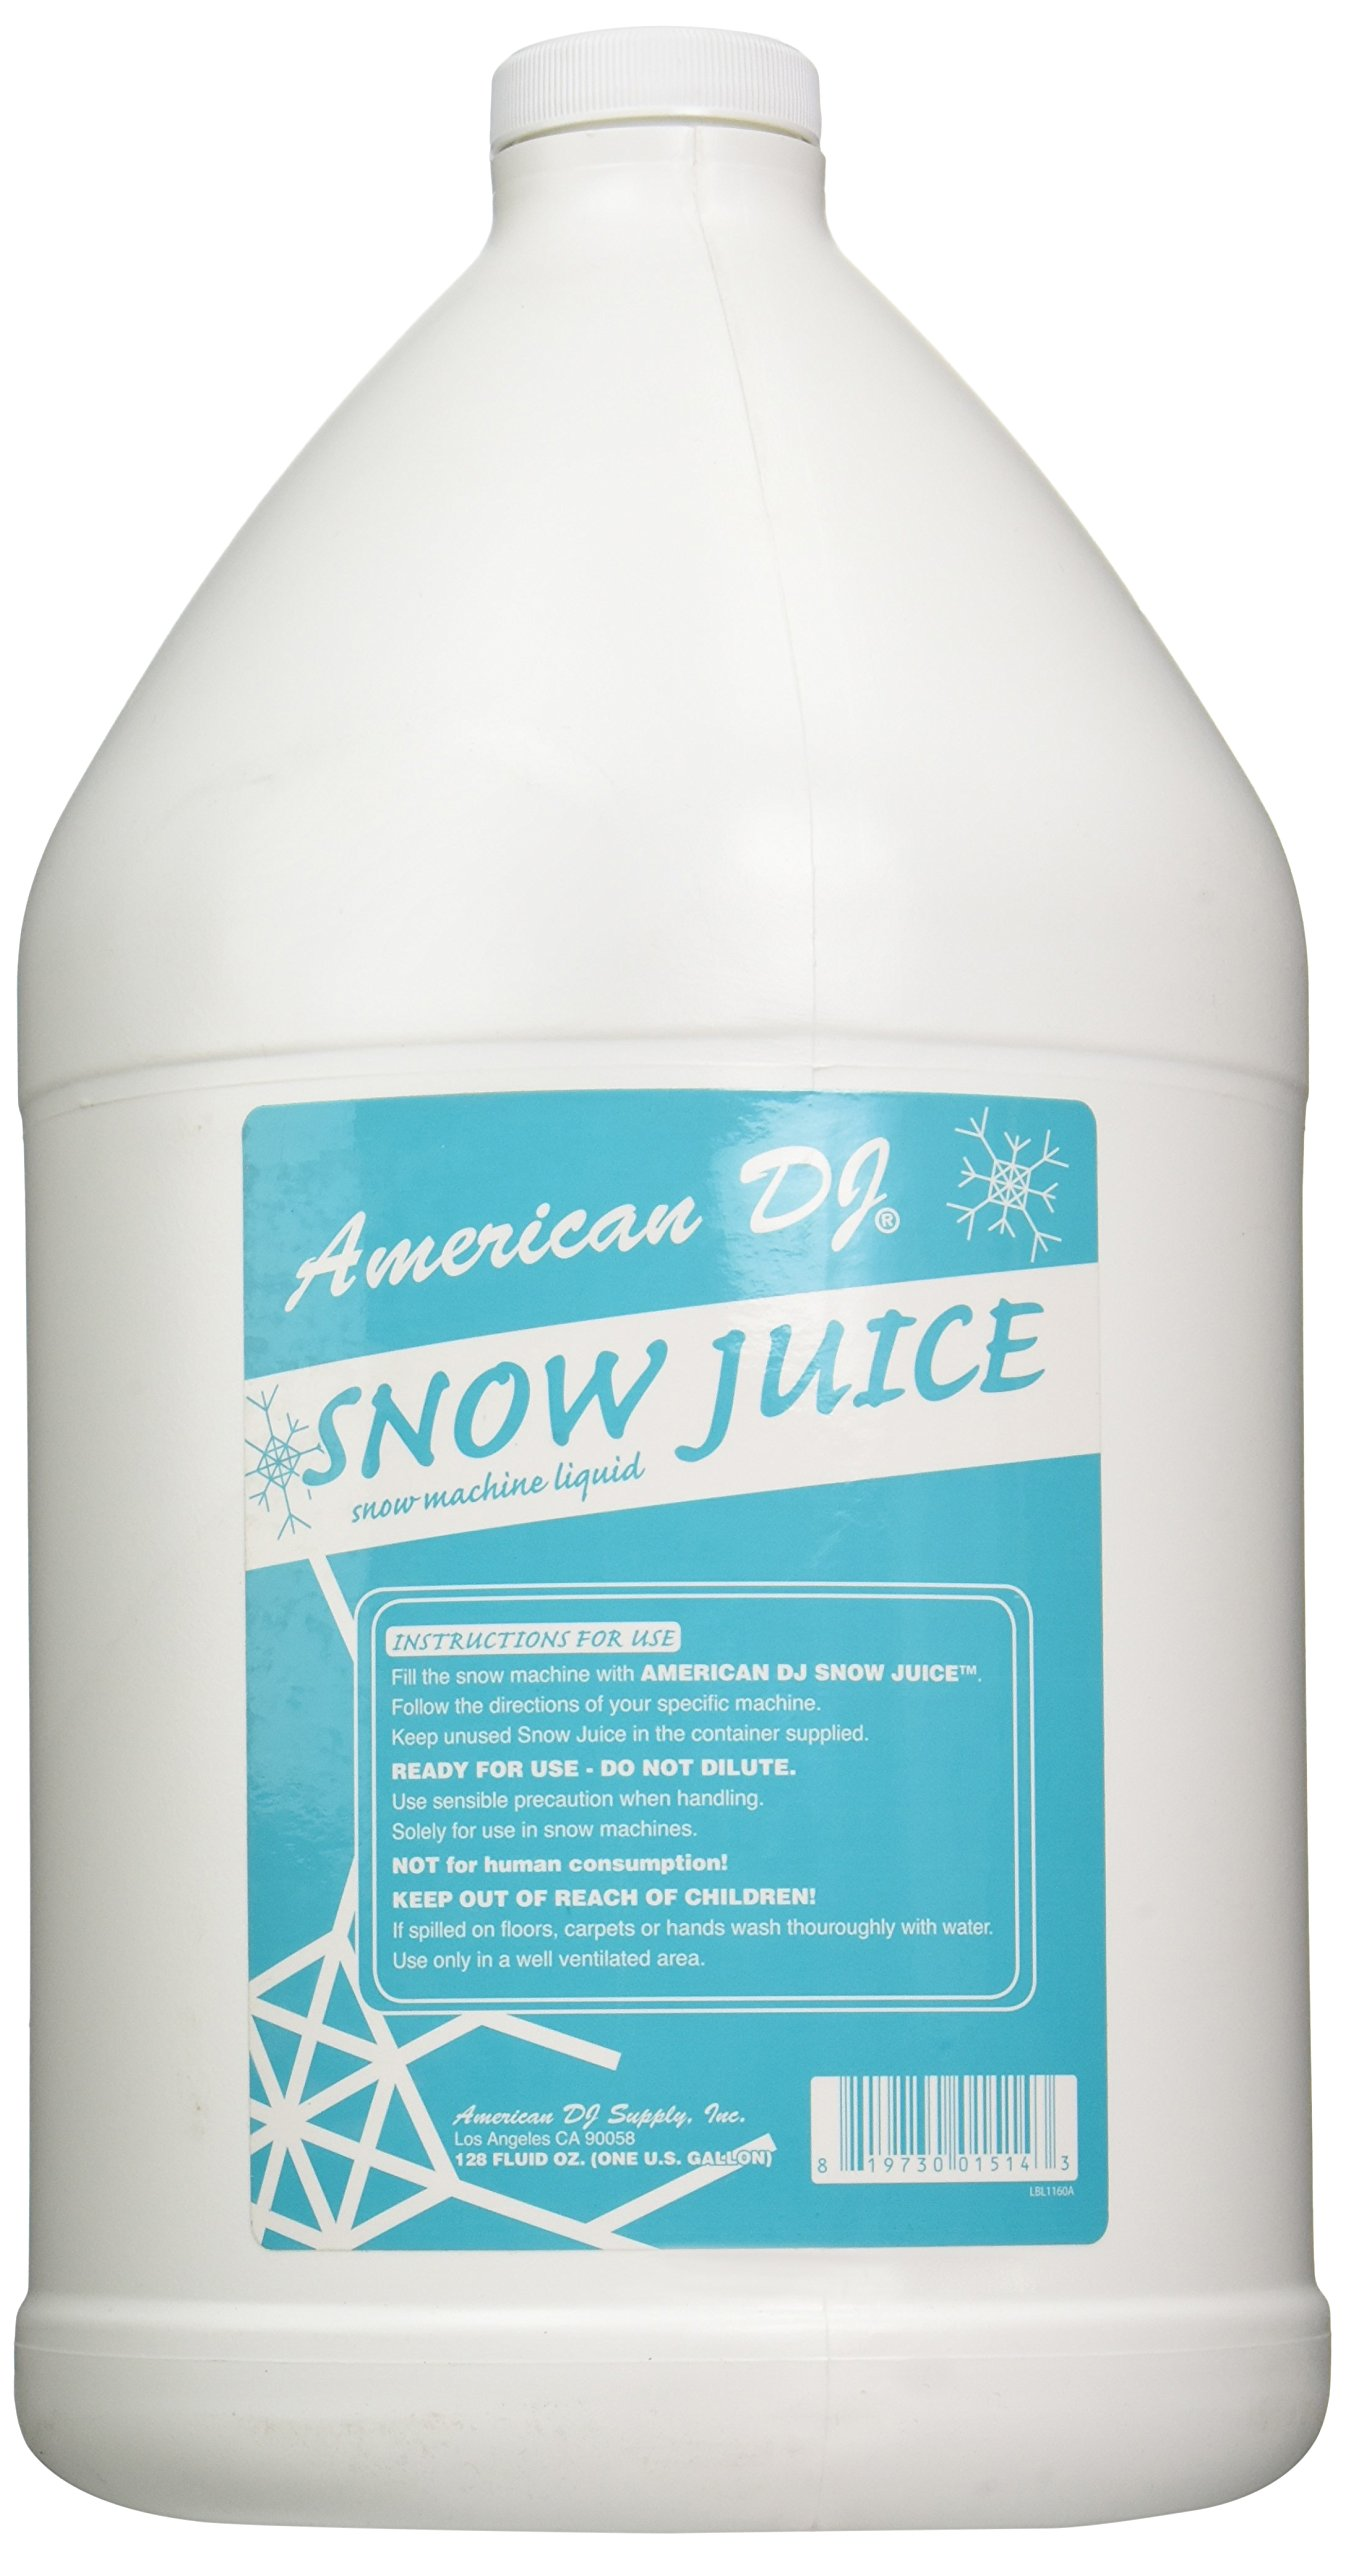 American Dj Snow Juice Gallon Sized Water Based Snow Fluid by ADJ Products